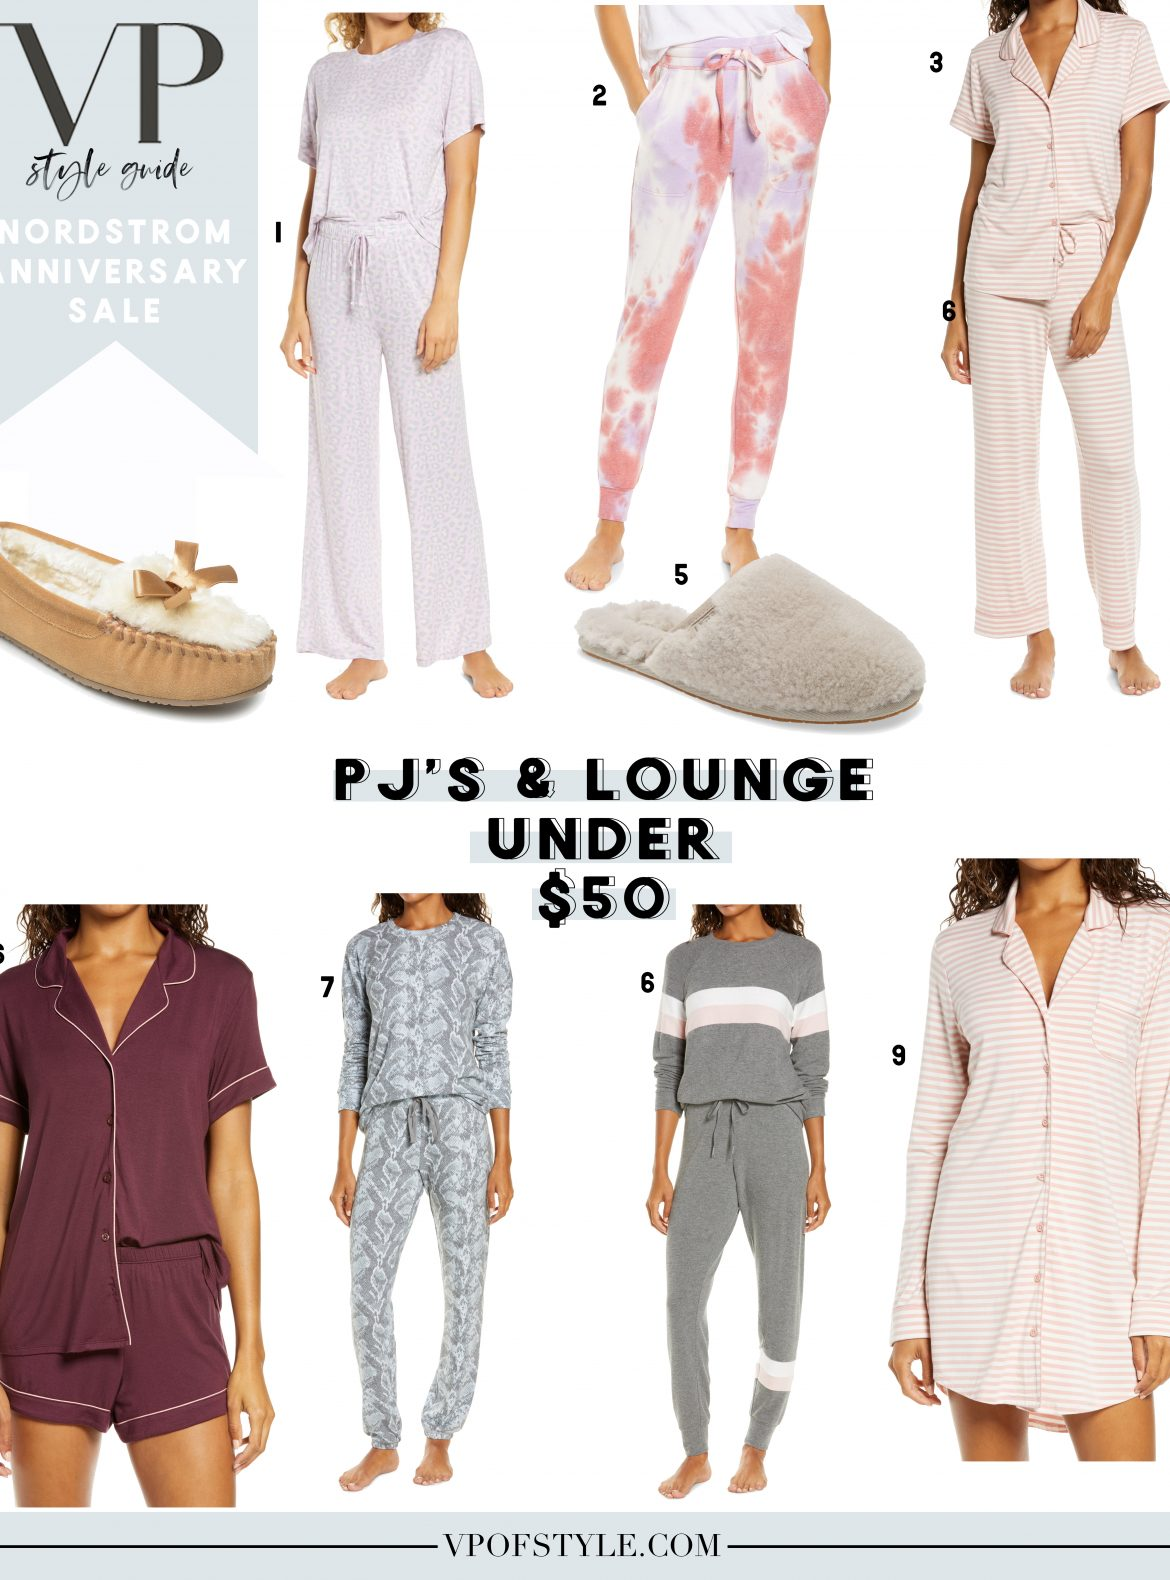 Nordstrom Anniversary Sale what to buy pajamas and lounge under $50